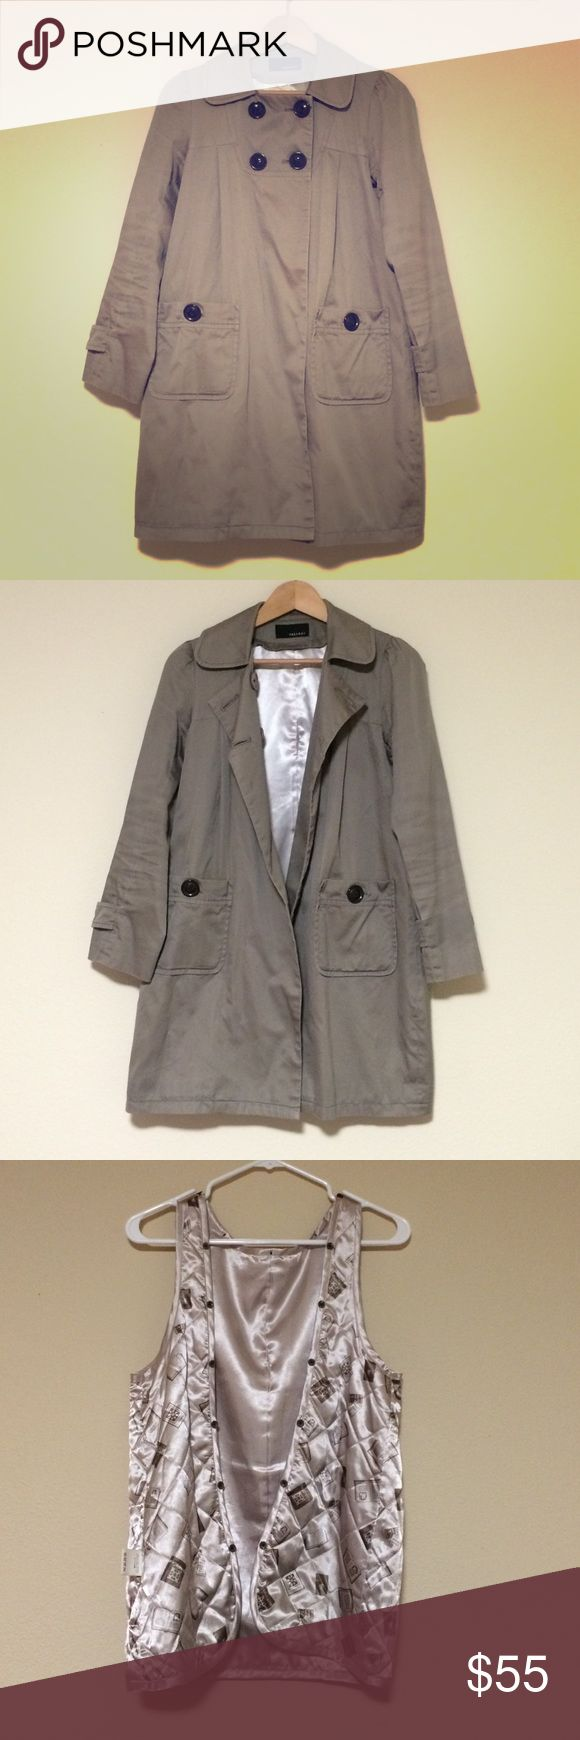 🍁2 ways Trench coat 🍂 Inside pad inner is detachable, so you can use through fall to winter☃, to spring🌸 Super cute earthy brown beige color💕 from Japan Page boy Jackets & Coats Trench Coats